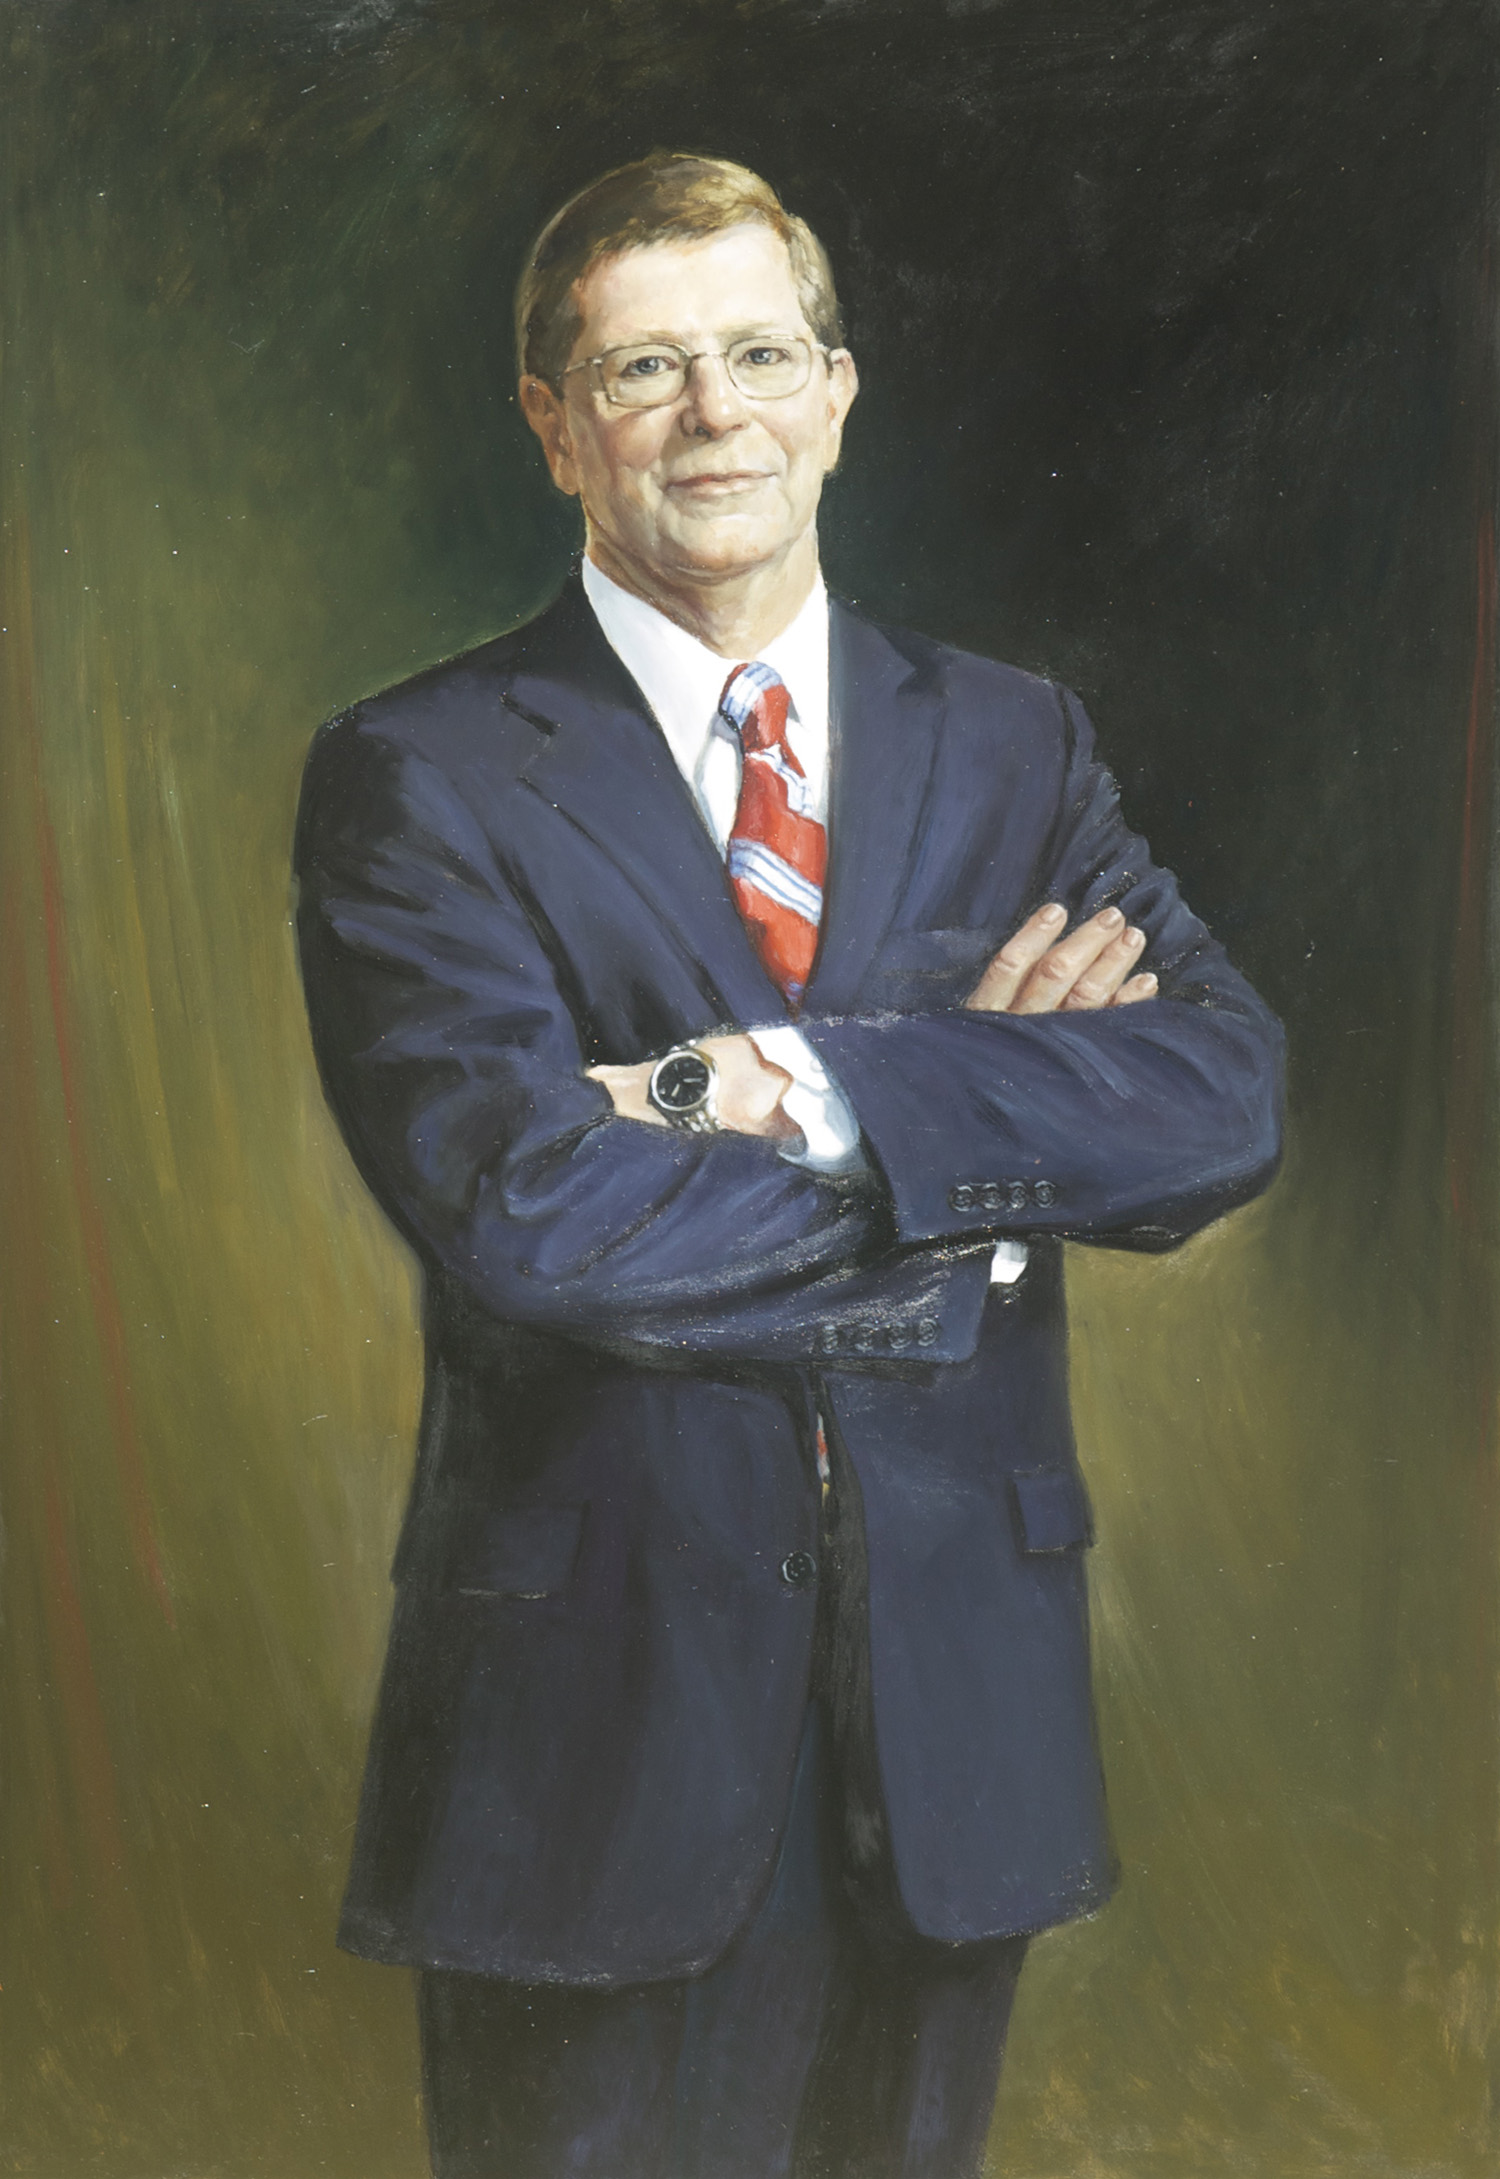 "Mike Middleton, Pres. Community Bank of the Chesapeake, 30"" x 50"". Commission."